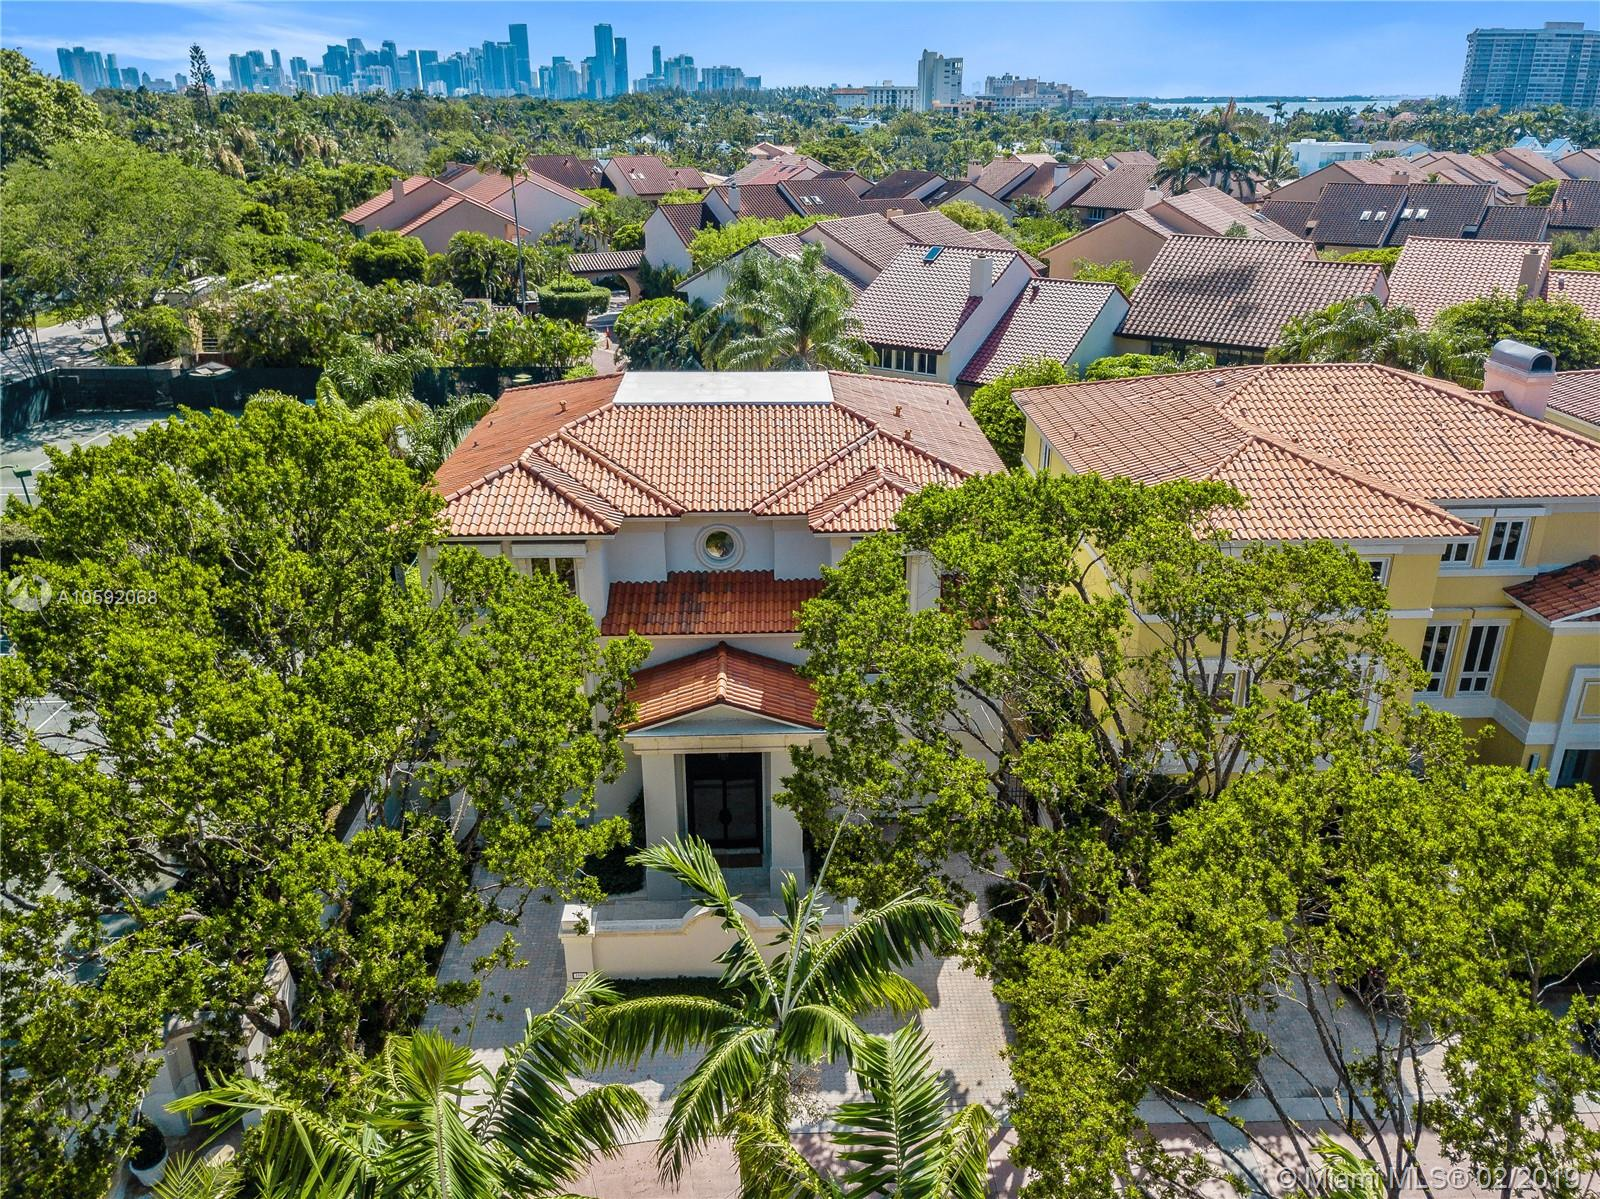 Welcome home to guard gated Bayshore Villas, located in Coconut Grove just south of Downtown Miami and Brickell Avenue.  This gorgeous villa has over 5000 square feet of living space with 4 large bedrooms each with its own bathroom, the huge master bedroom has two well appointed master baths. Cypress wood and bamboo ceilings throughout the living rooms please every visual sense a buyer is wishing for in their home.  The kitchen features a butlers pantry, top of the line appliances and an adjoining breakfast room.  This amazing home must be seen to be appreciated.  Community pool, Tennis courts and dock is a great place to take in the views of Biscayne Bay.  Walk to everything Coconut Grove has to offer including world class Marinas one block away.